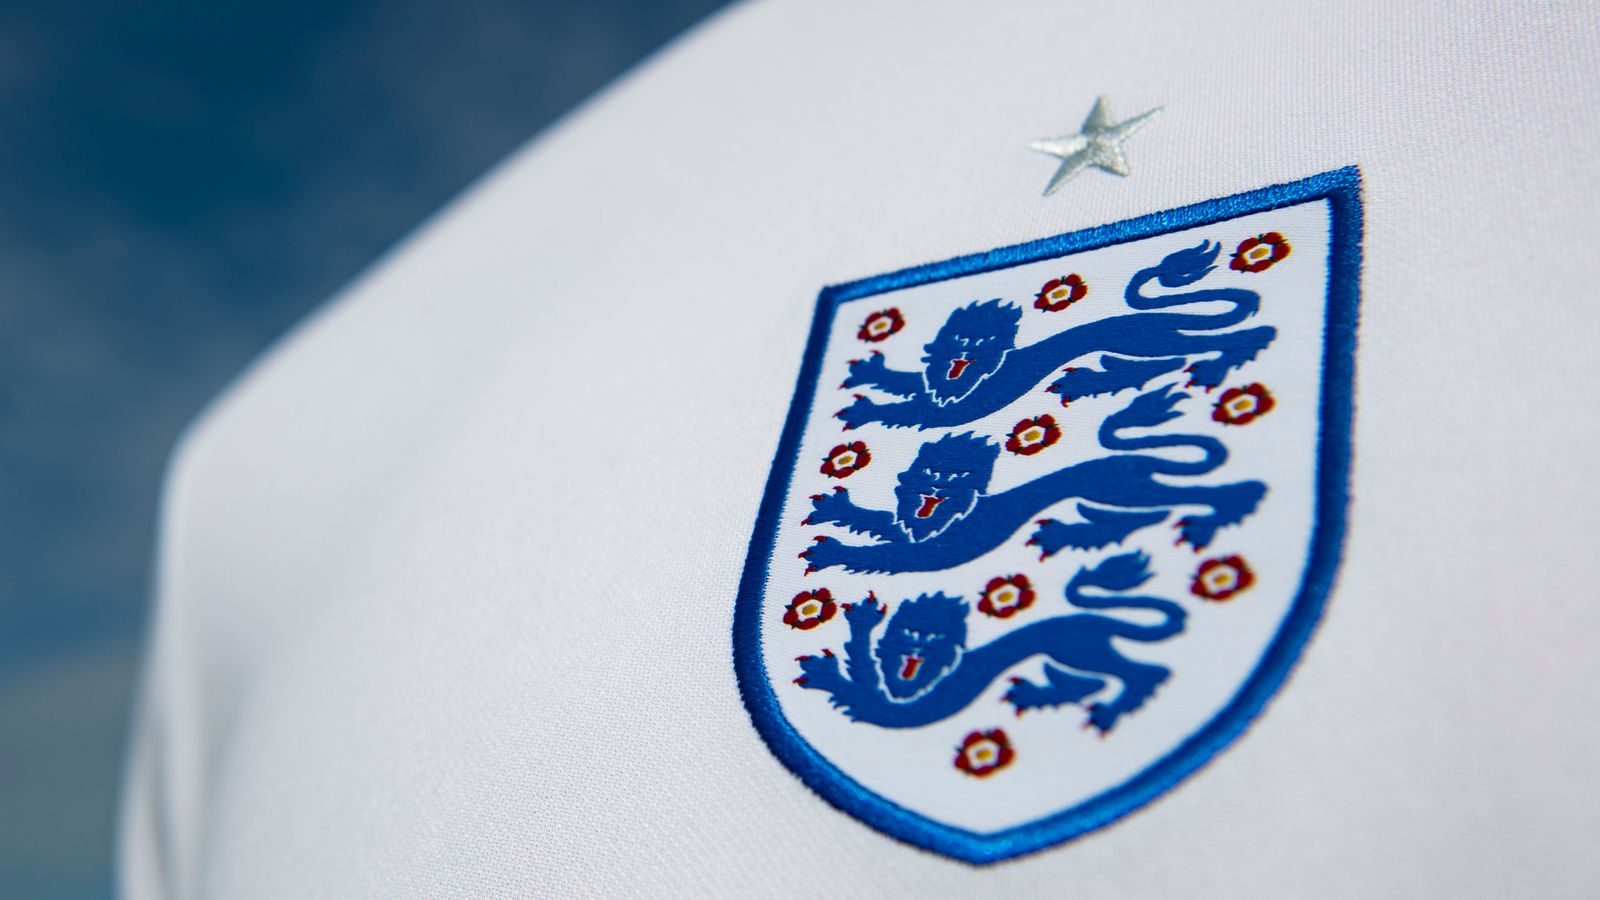 England sack their UEFA-appointed Euro 2020 security team following safety concerns